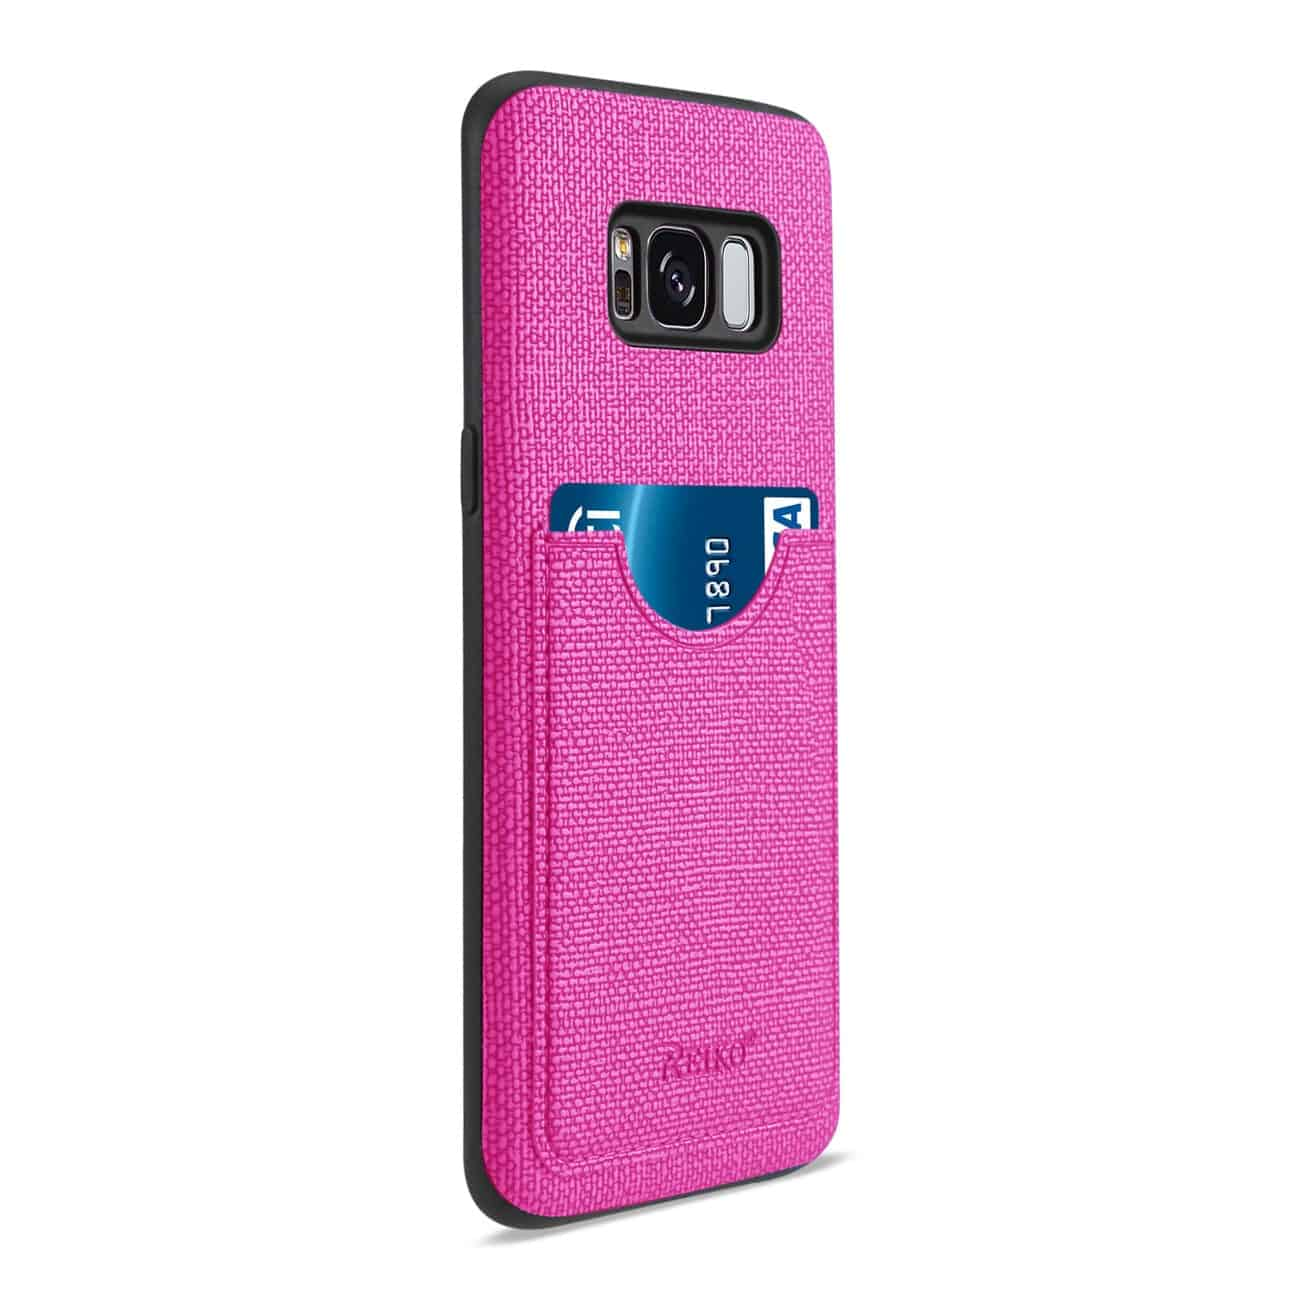 SAMSUNG GALAXY S8/ SM ANTI-SLIP TEXTURE PROTECTOR COVER WITH CARD SLOT IN HOT PINK